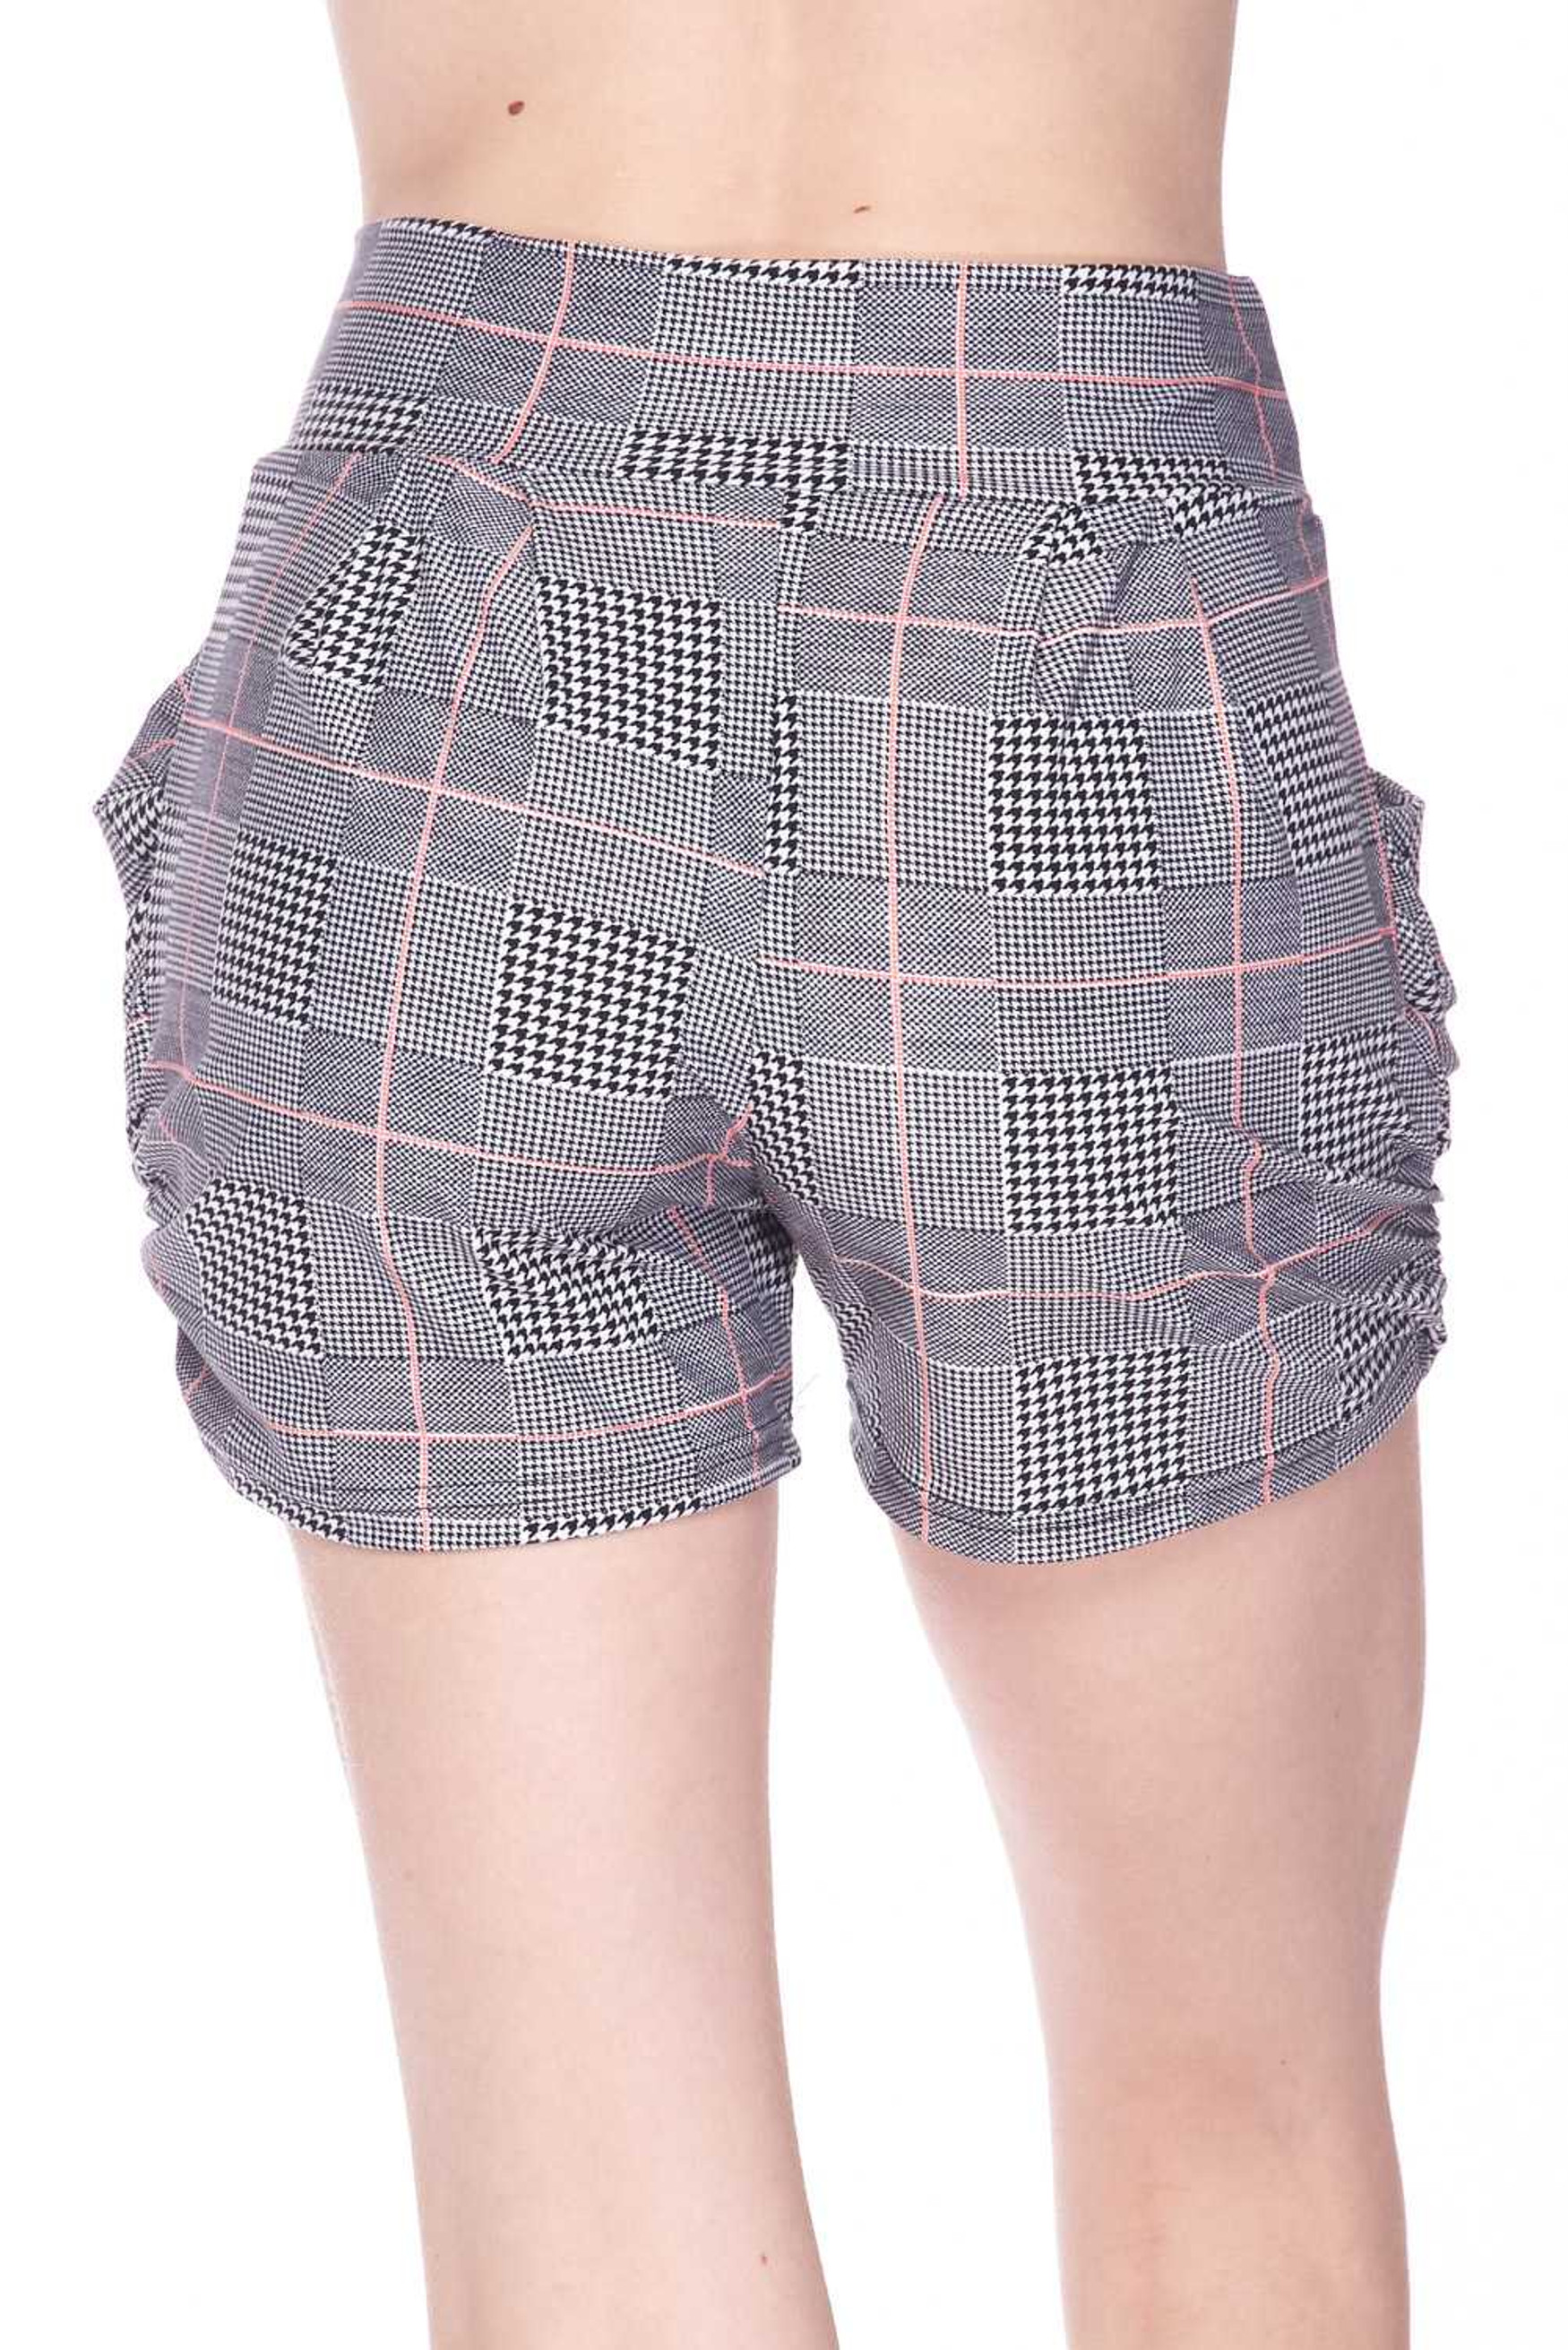 Buttery Soft Coral Accent Textured Houndstooth Harem Plus Size Shorts